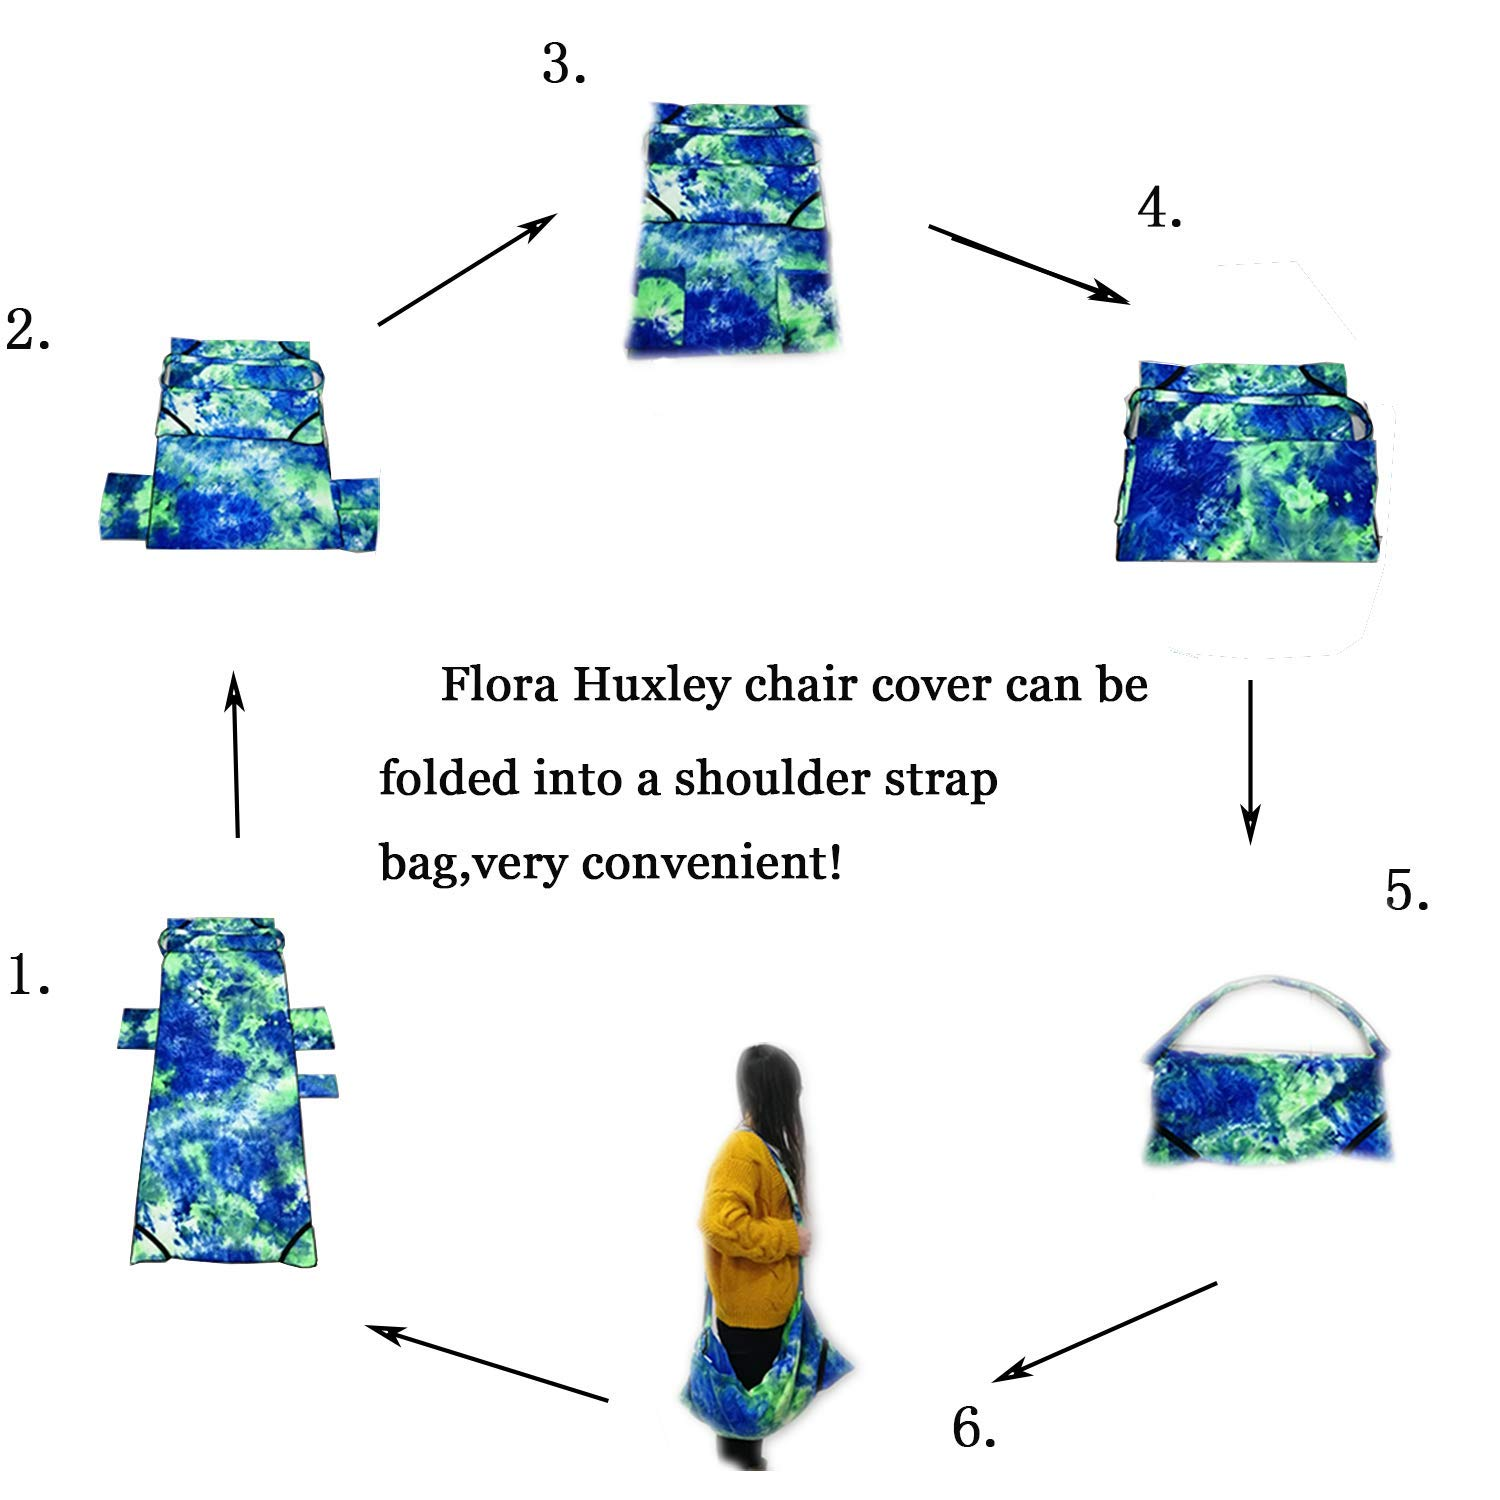 Flora Huxley Tie-dye Beach Chair Cover, Lounge Chair Towel Cover with Side Pockets,Purple